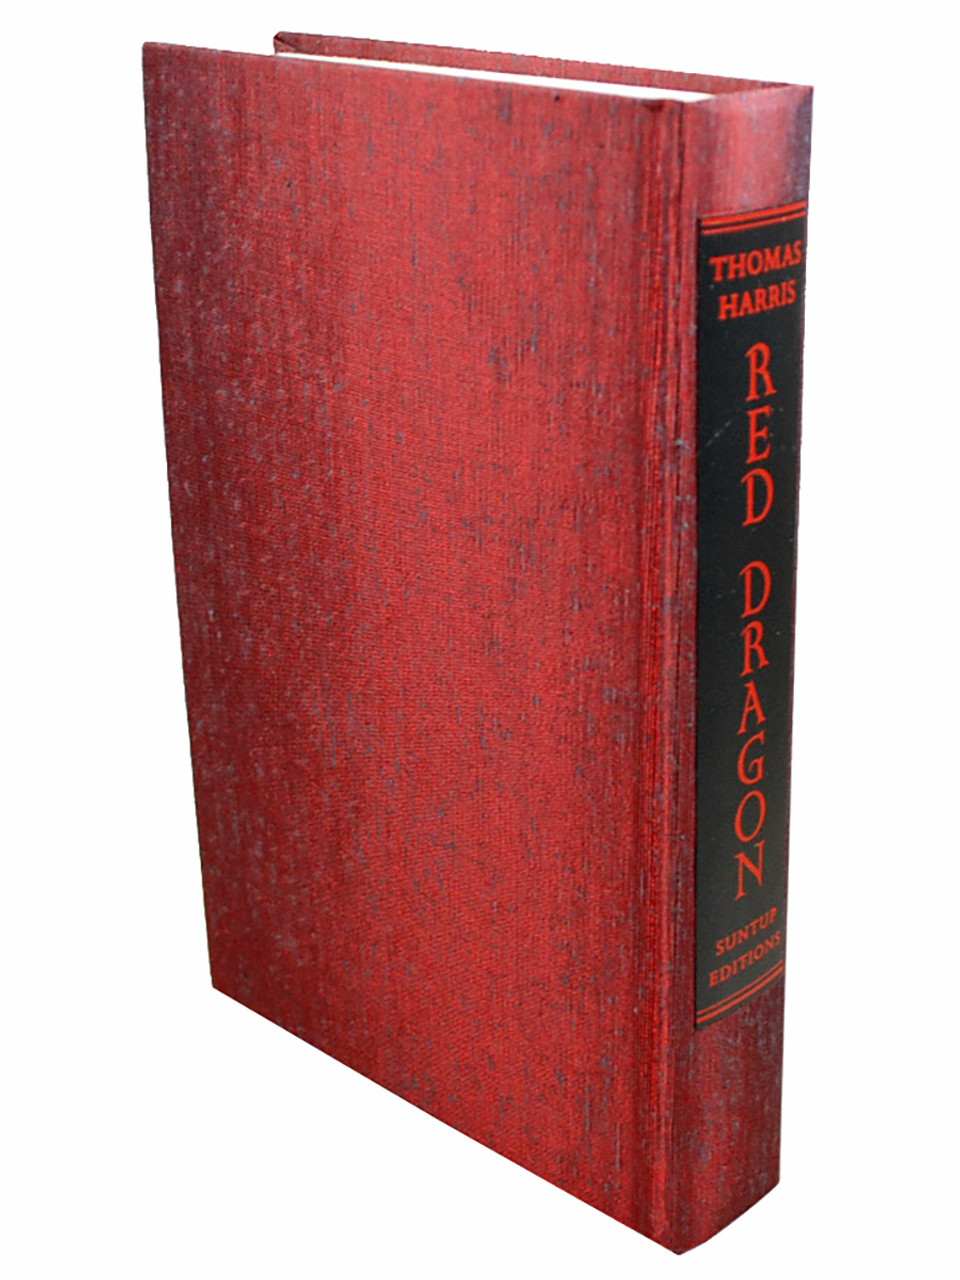 """Thomas Harris """"Red Dragon"""" Signed Limited Edition No. 90 of 250, Slipcased w/Bonus Limited Premiums  [Very Fine]"""